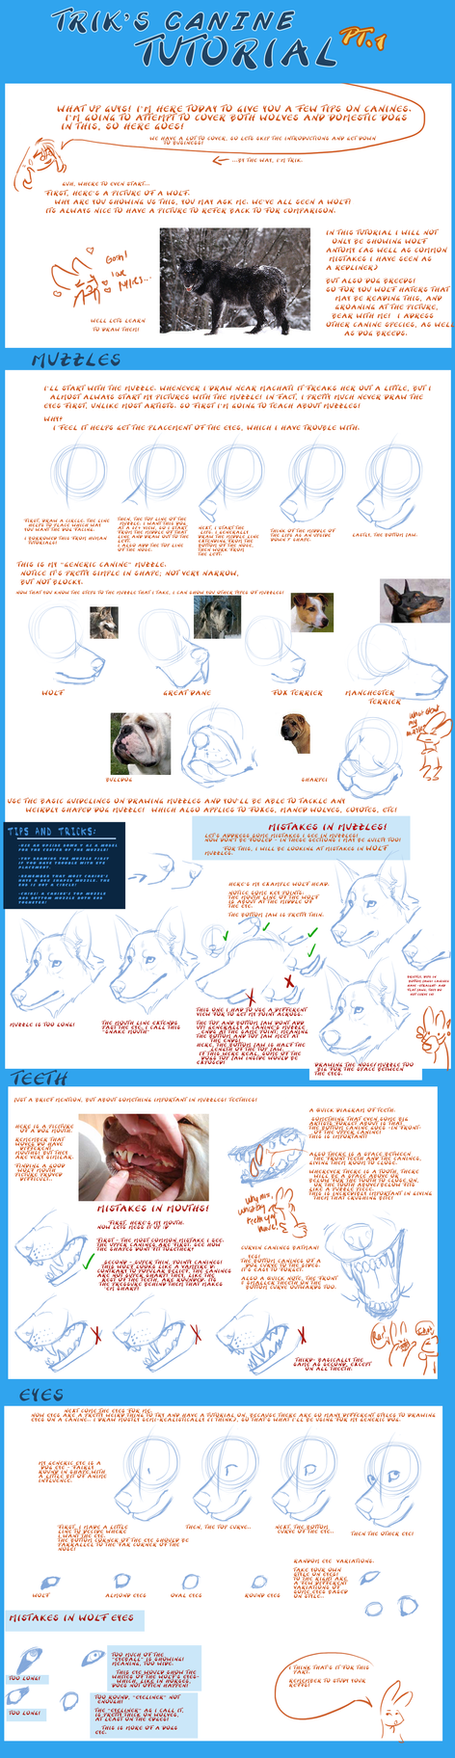 Canine Tut Pt1 - Muzzles, Eyes by Jeakilo